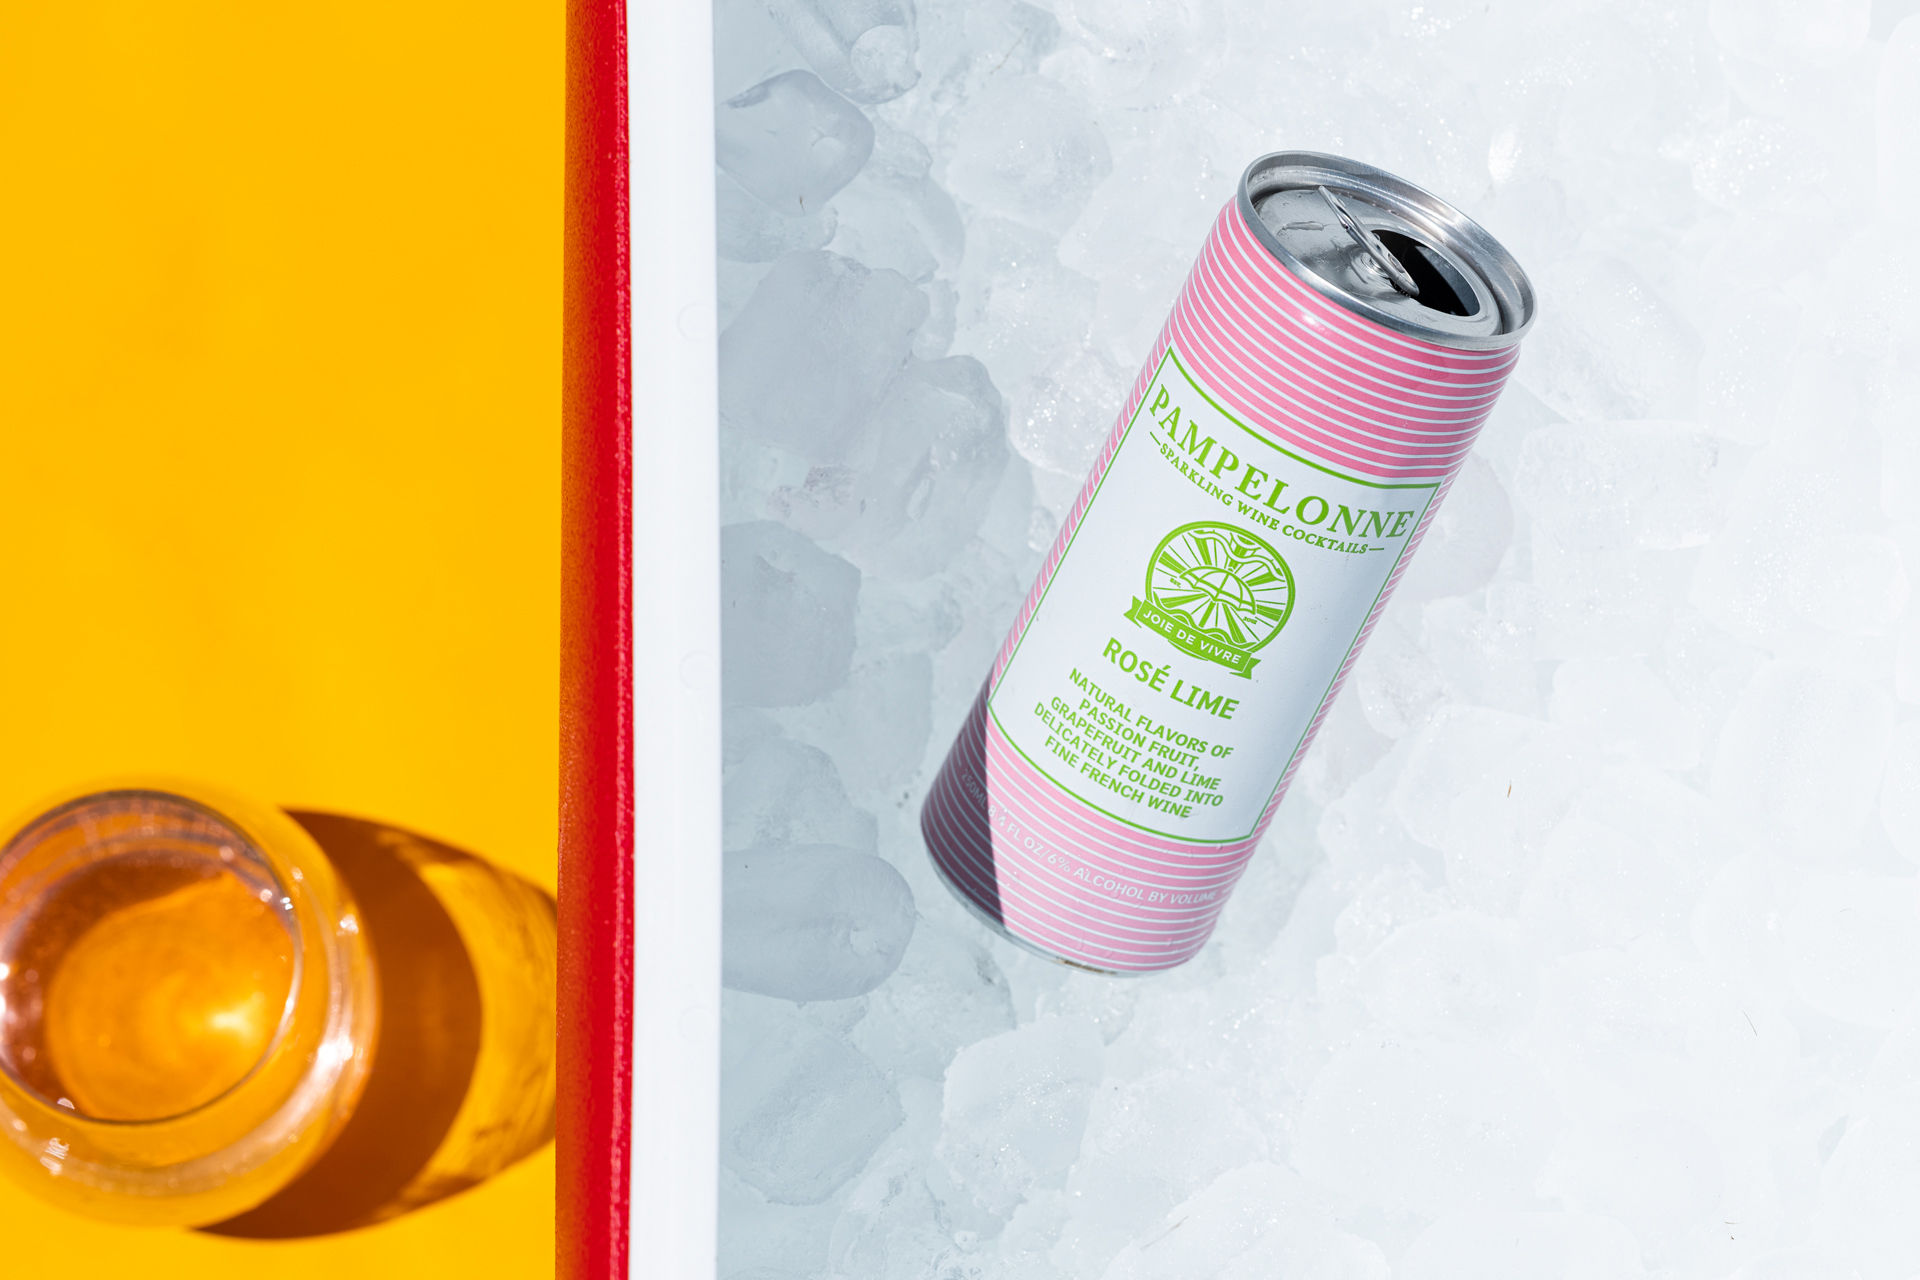 Pampelonne is one of our six favorite canned wine spritzers